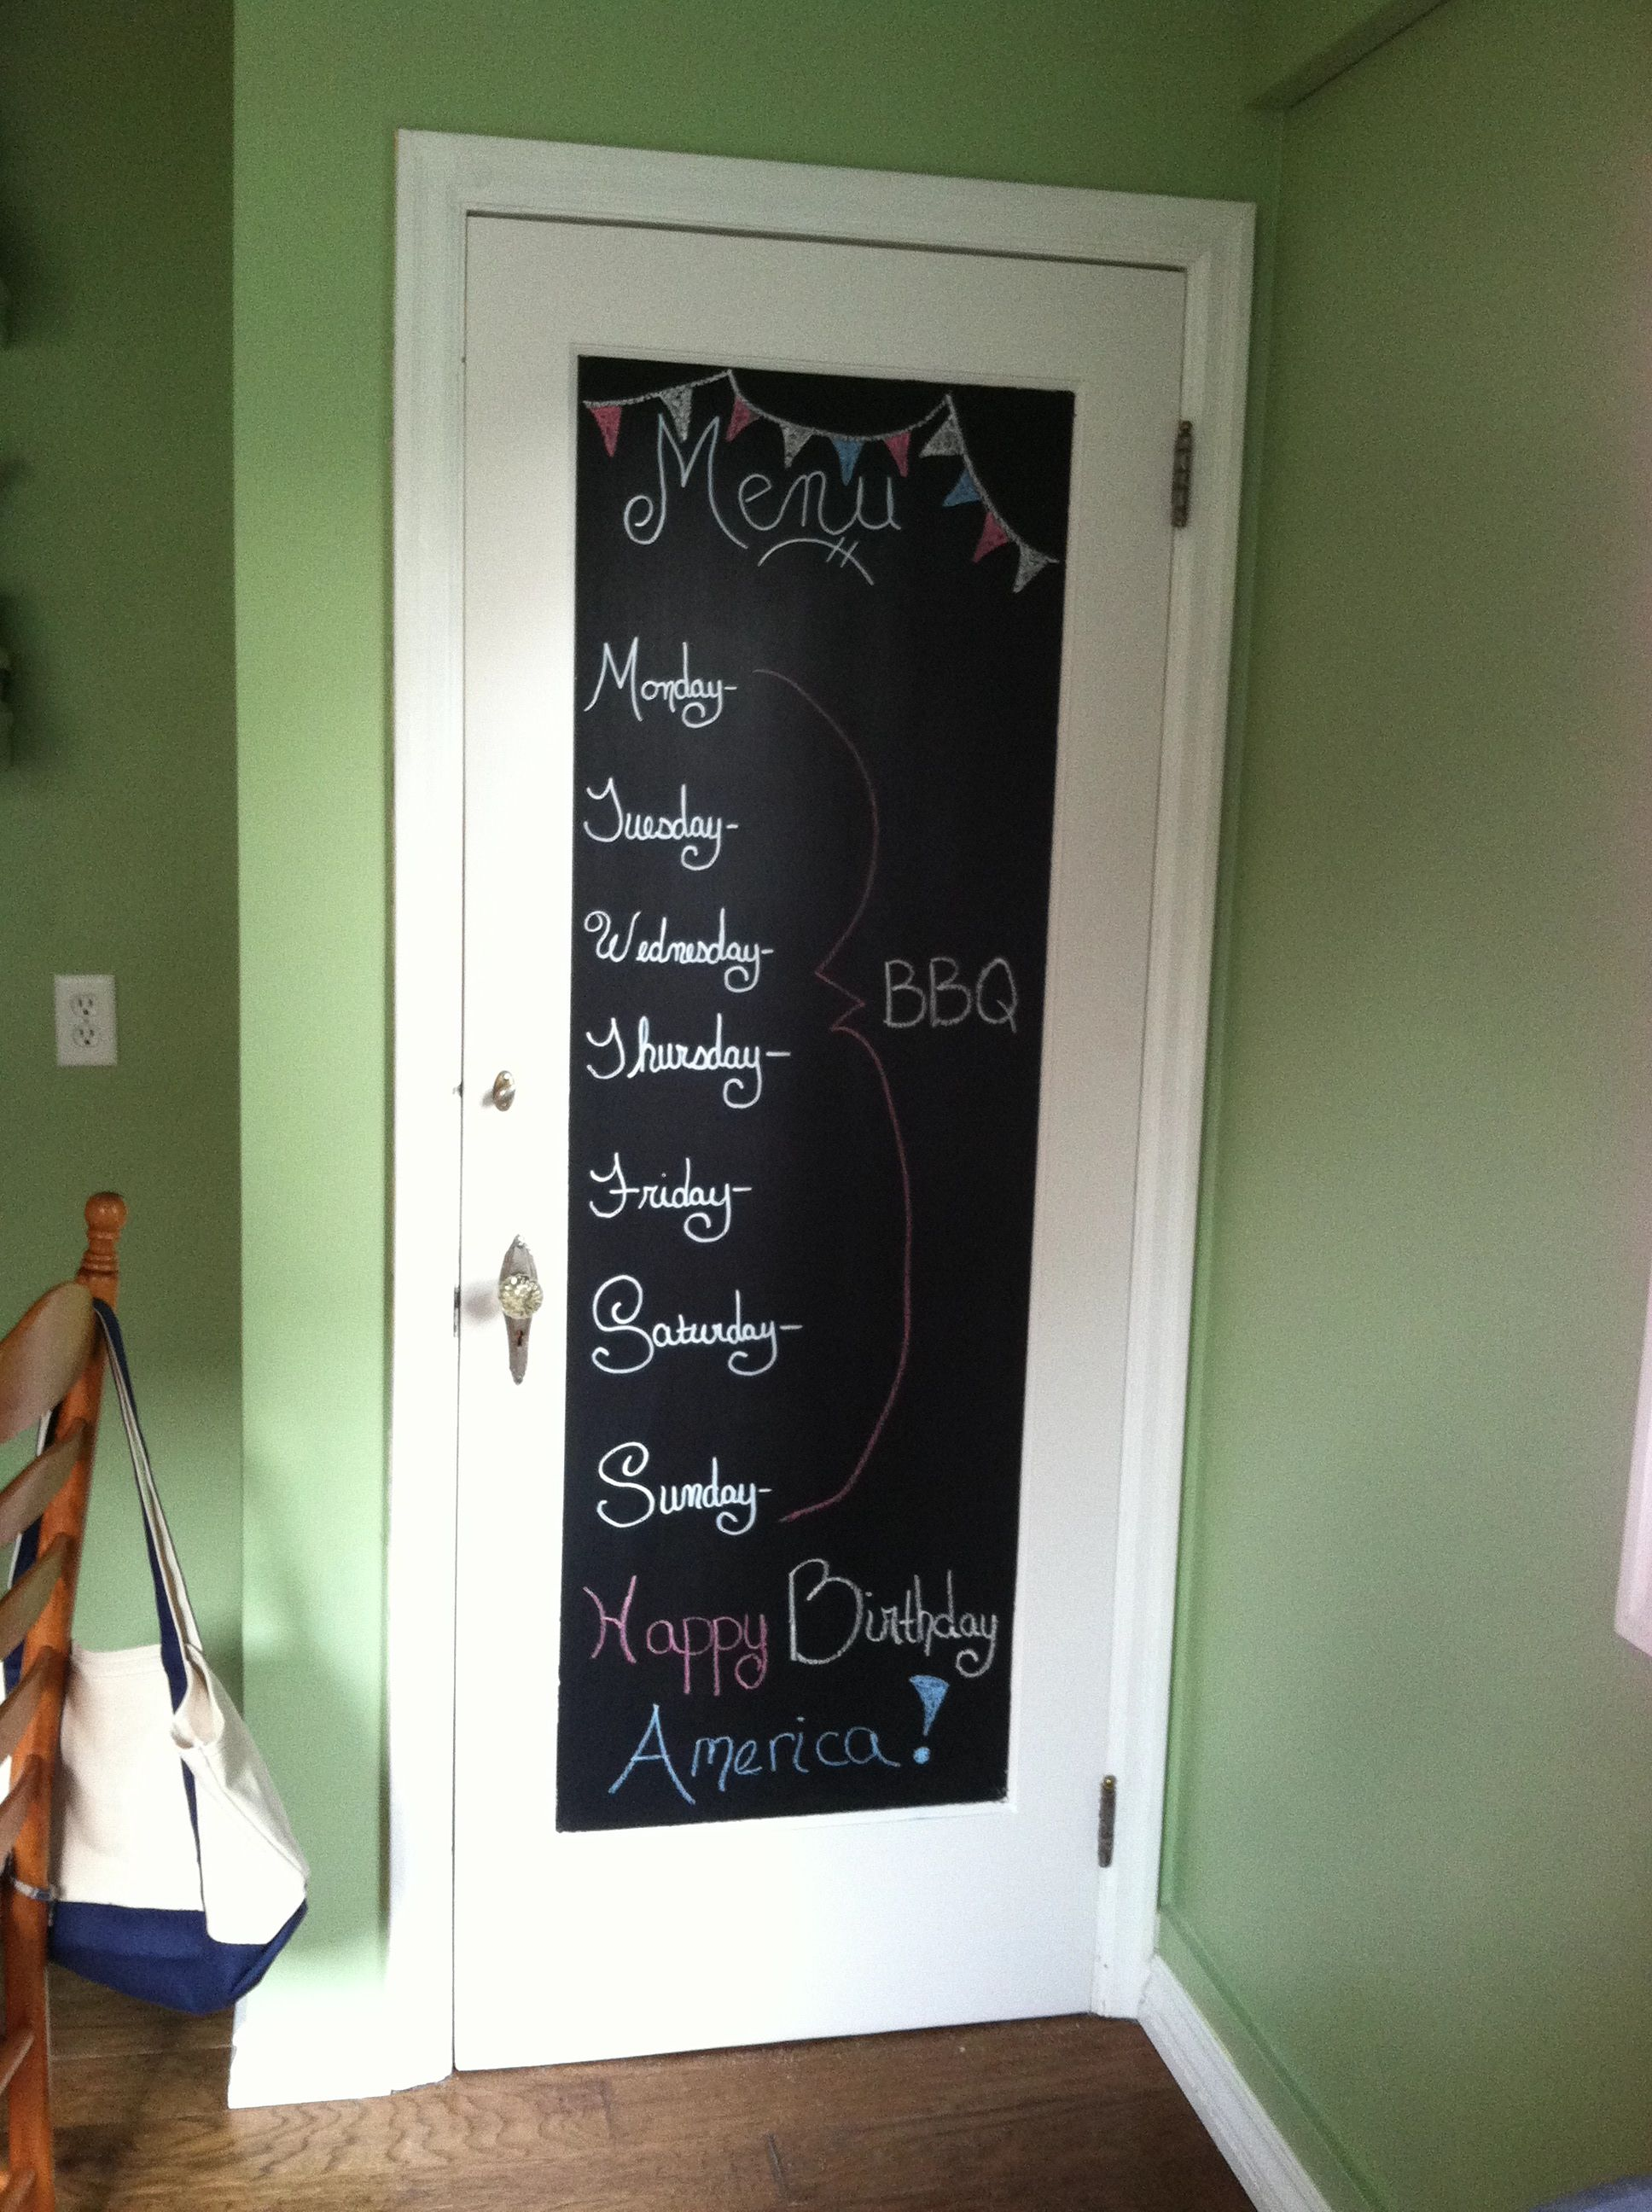 My Kitchen Door Menu Blackboard I Am Going To Give This As A Project To Dd Who Needs Control Of Something Kitchen Doors Wood Projects Doors